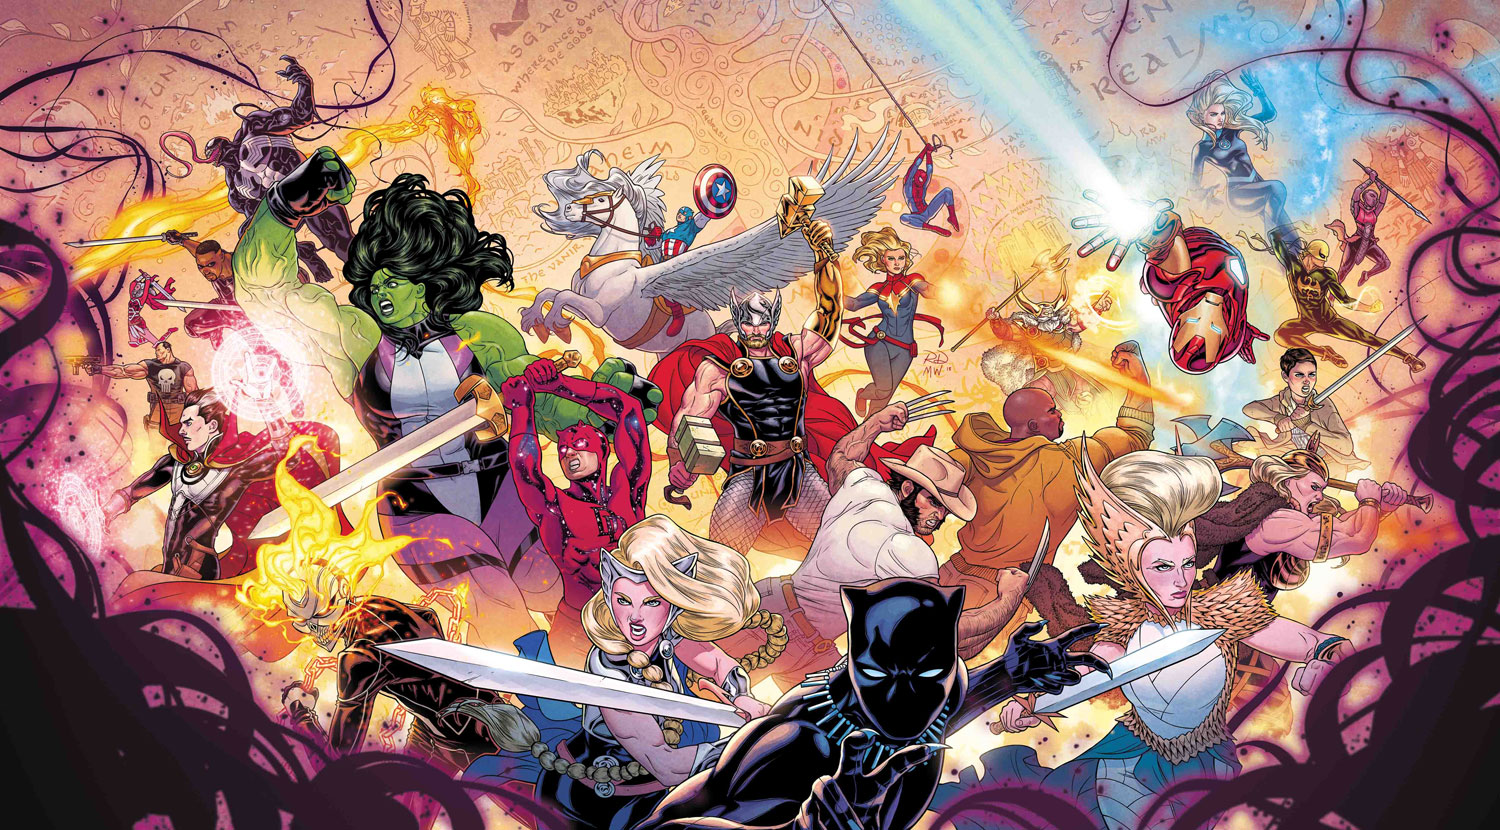 War of the Realms #1 Russell Dauterman variant cover